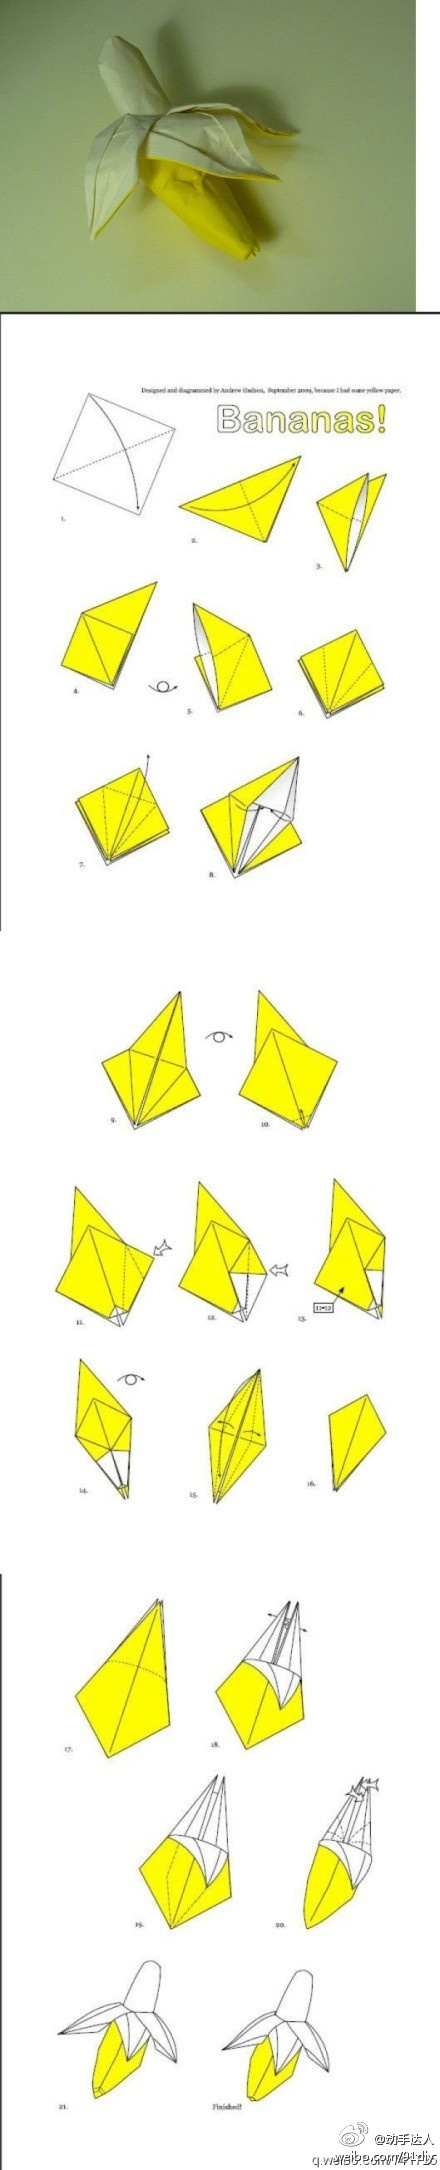 Origami 3D Banana and other fruits to be thrown with flowers down the isle